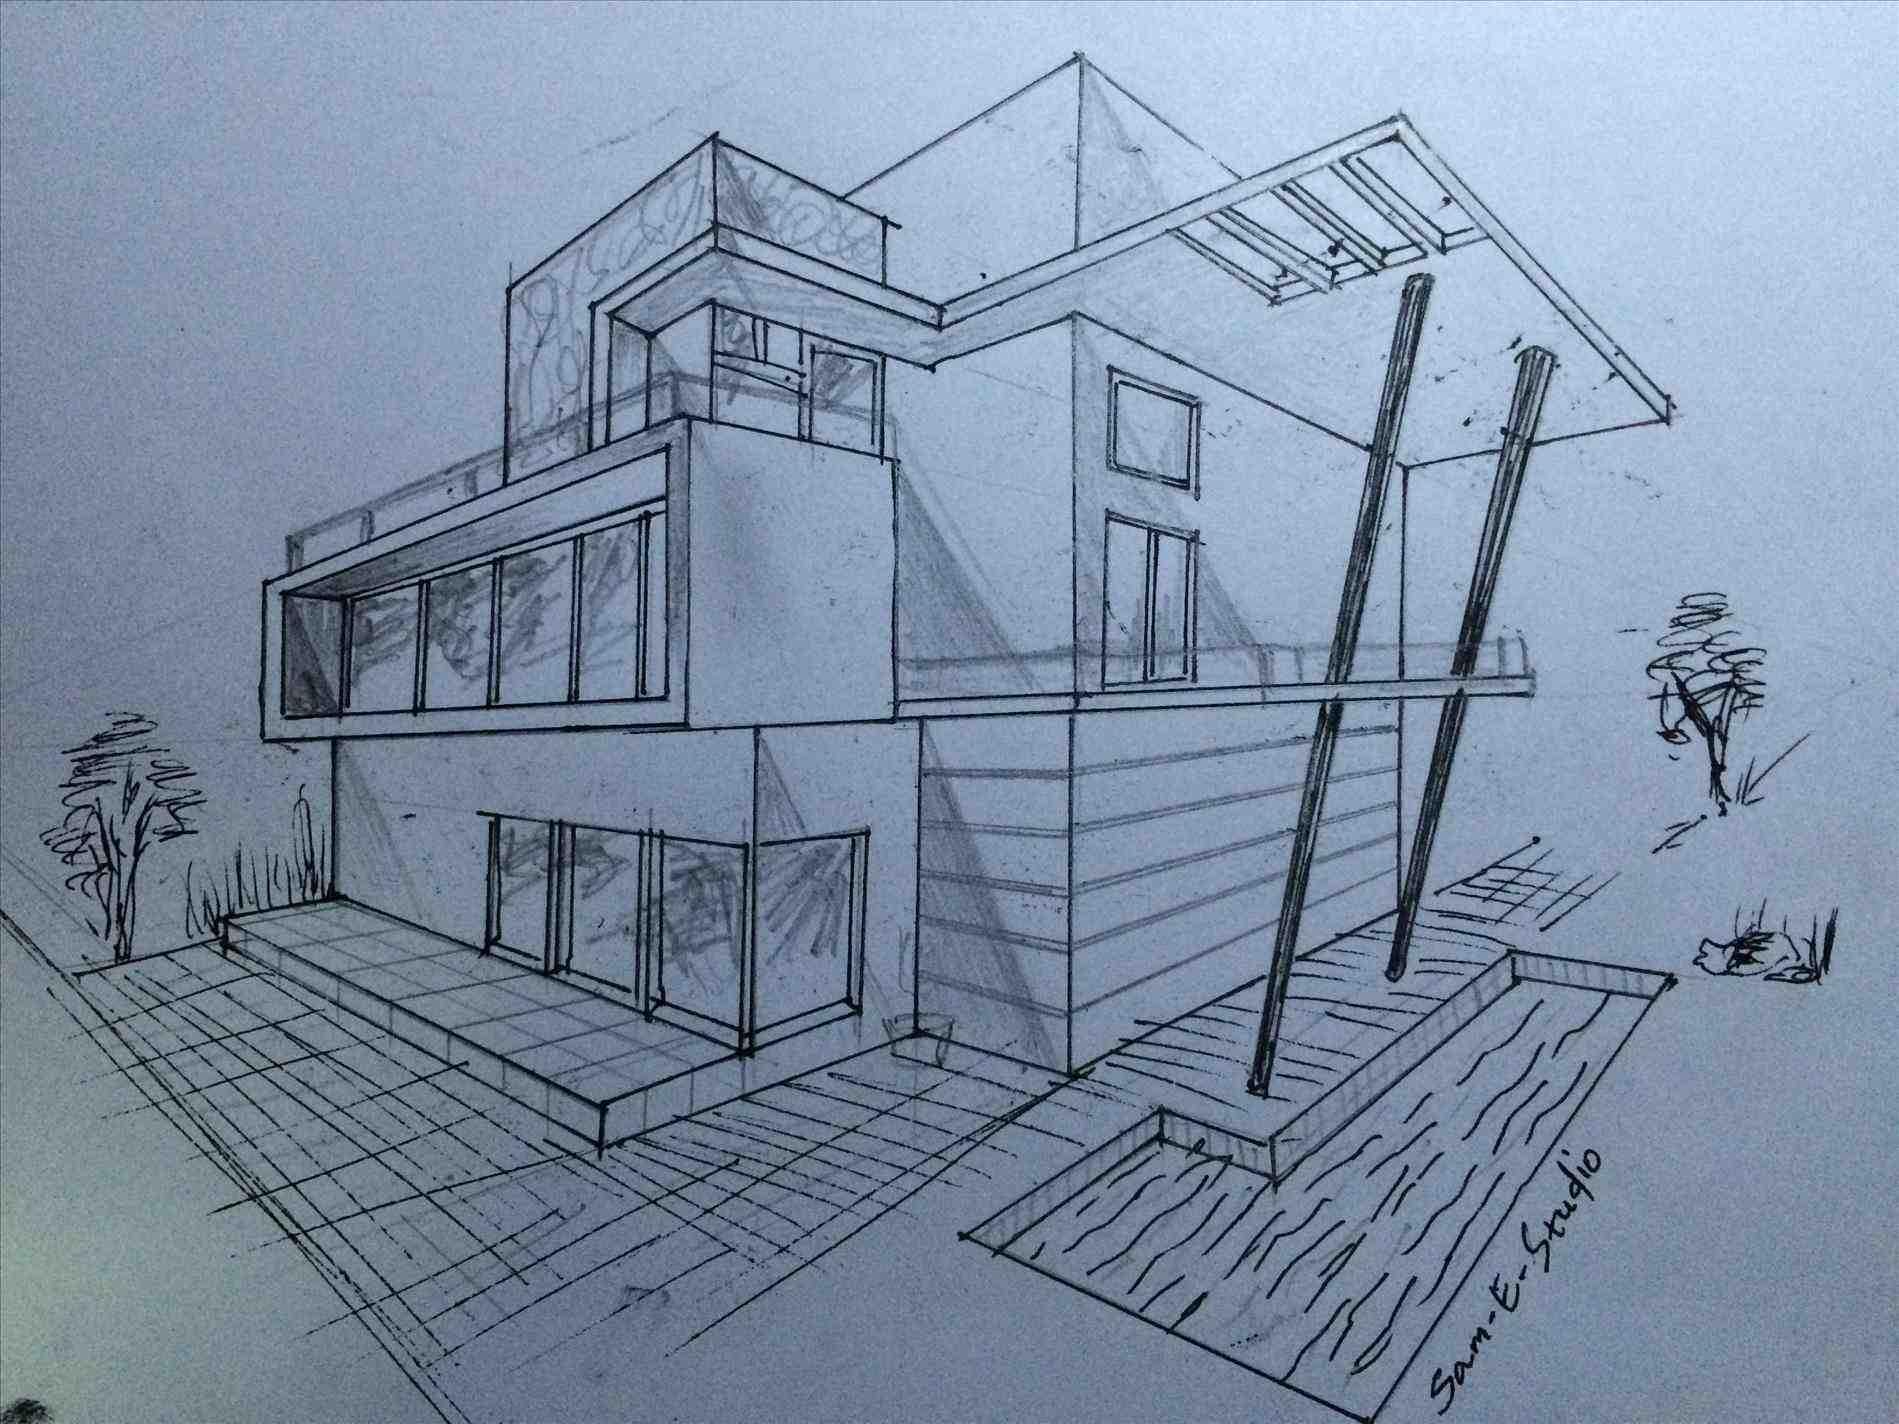 Dream House Drawing at GetDrawings.com | Free for personal use Dream ...